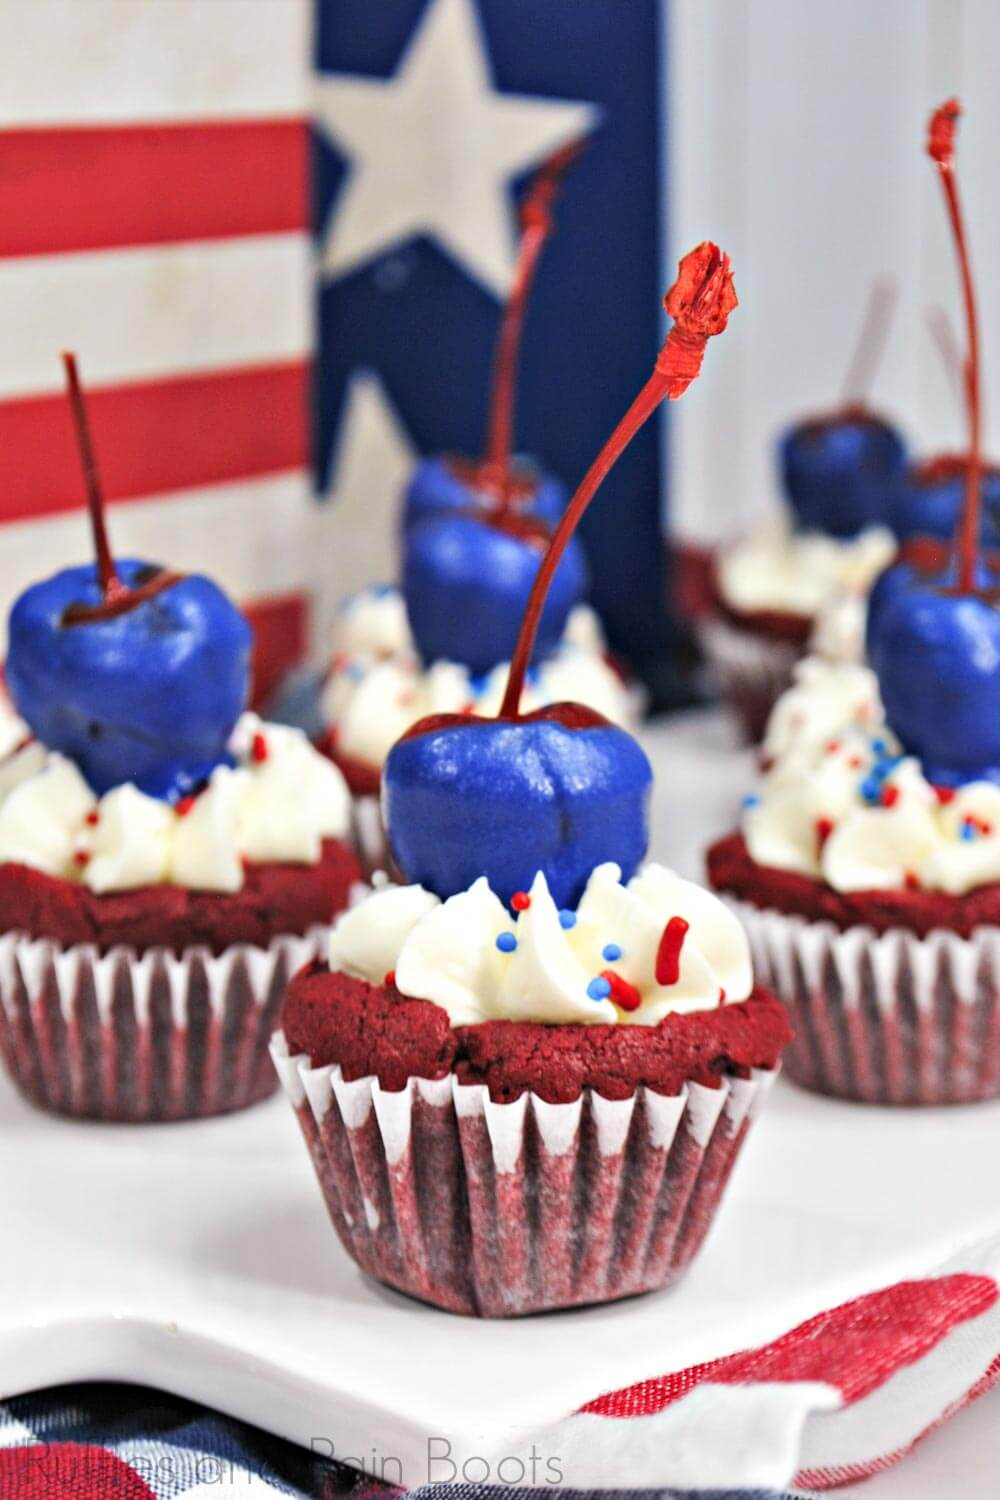 side view of several red velvet brownie bites, red brownie mini-cupcakes with white icing topped with blue-chocolate covered cherry on top on a white plate with a flag background